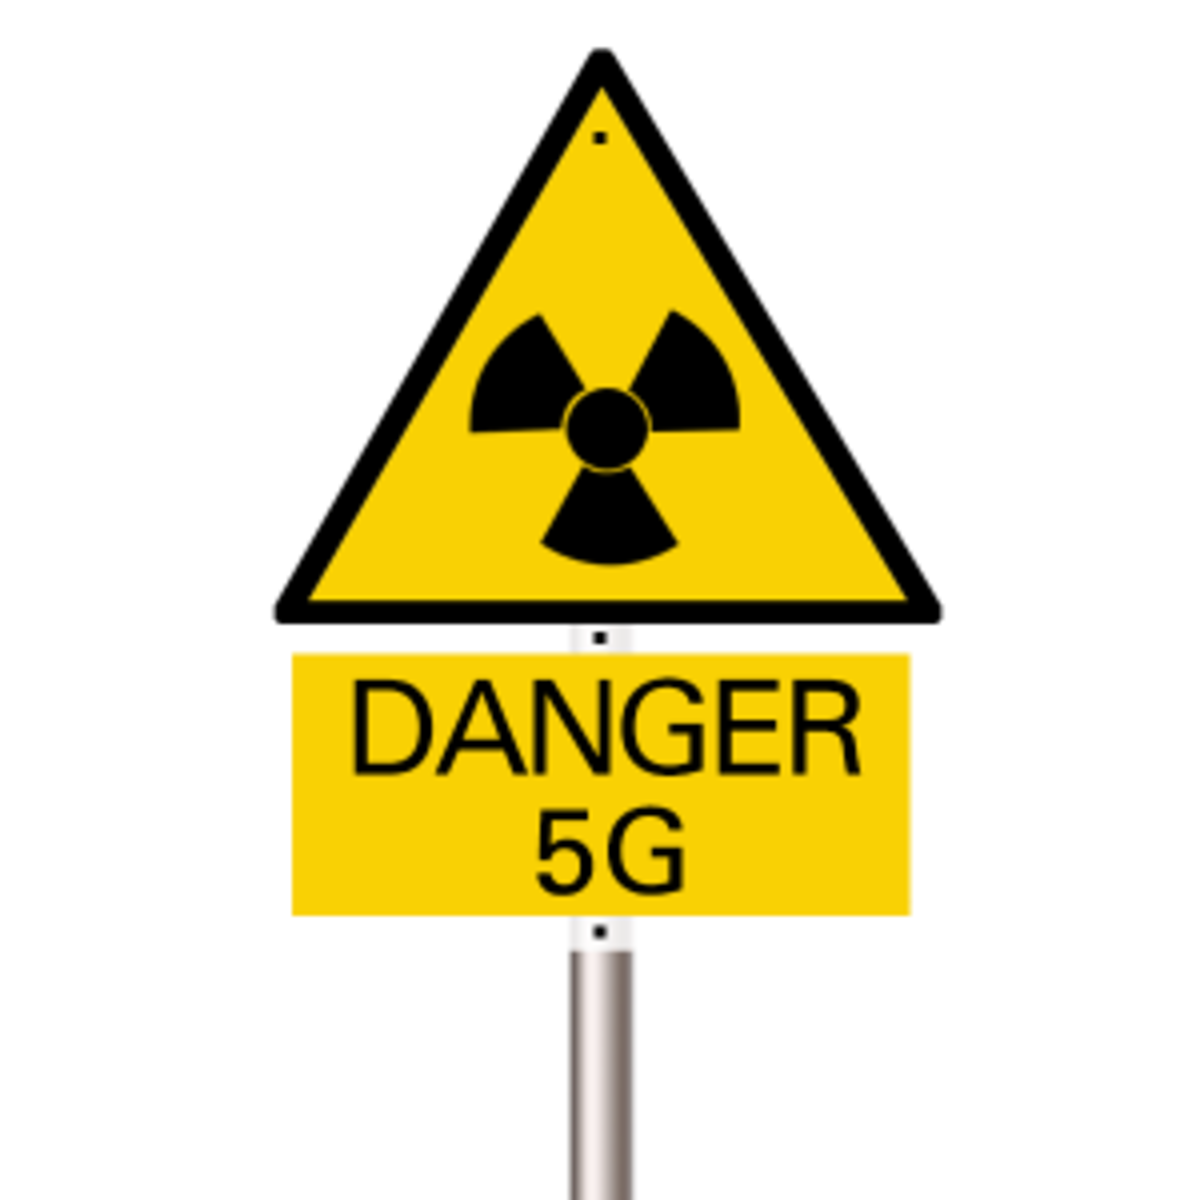 The massive build out of locally-based 5G wireless towers will increase human exposure to EMFs radiation dramatically.